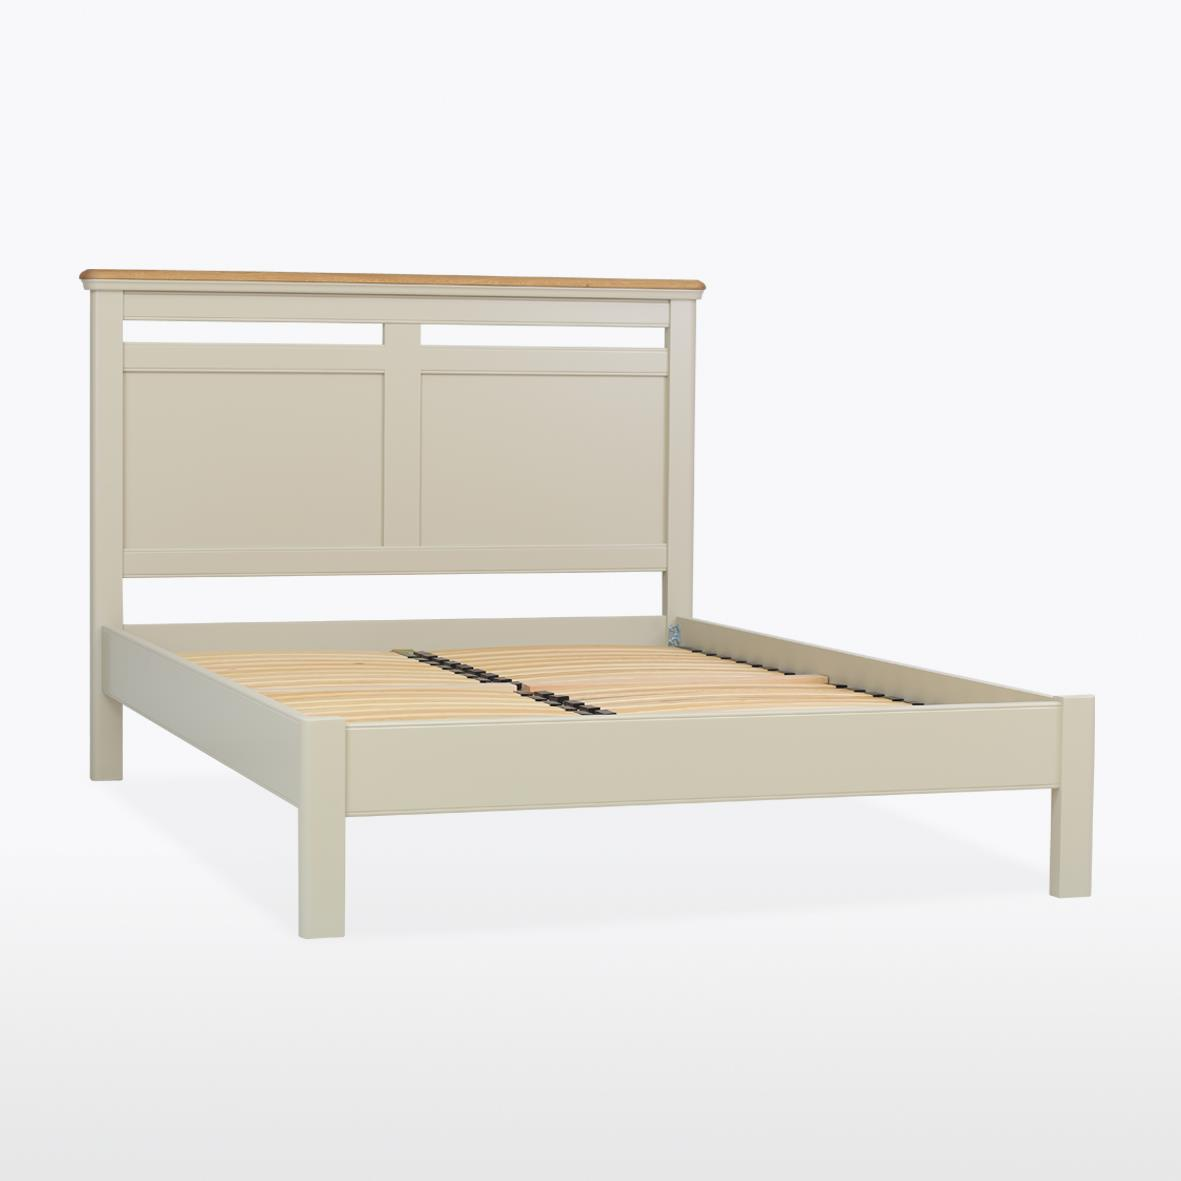 CROMWELL - Bedstead with Low Footend - CRO809